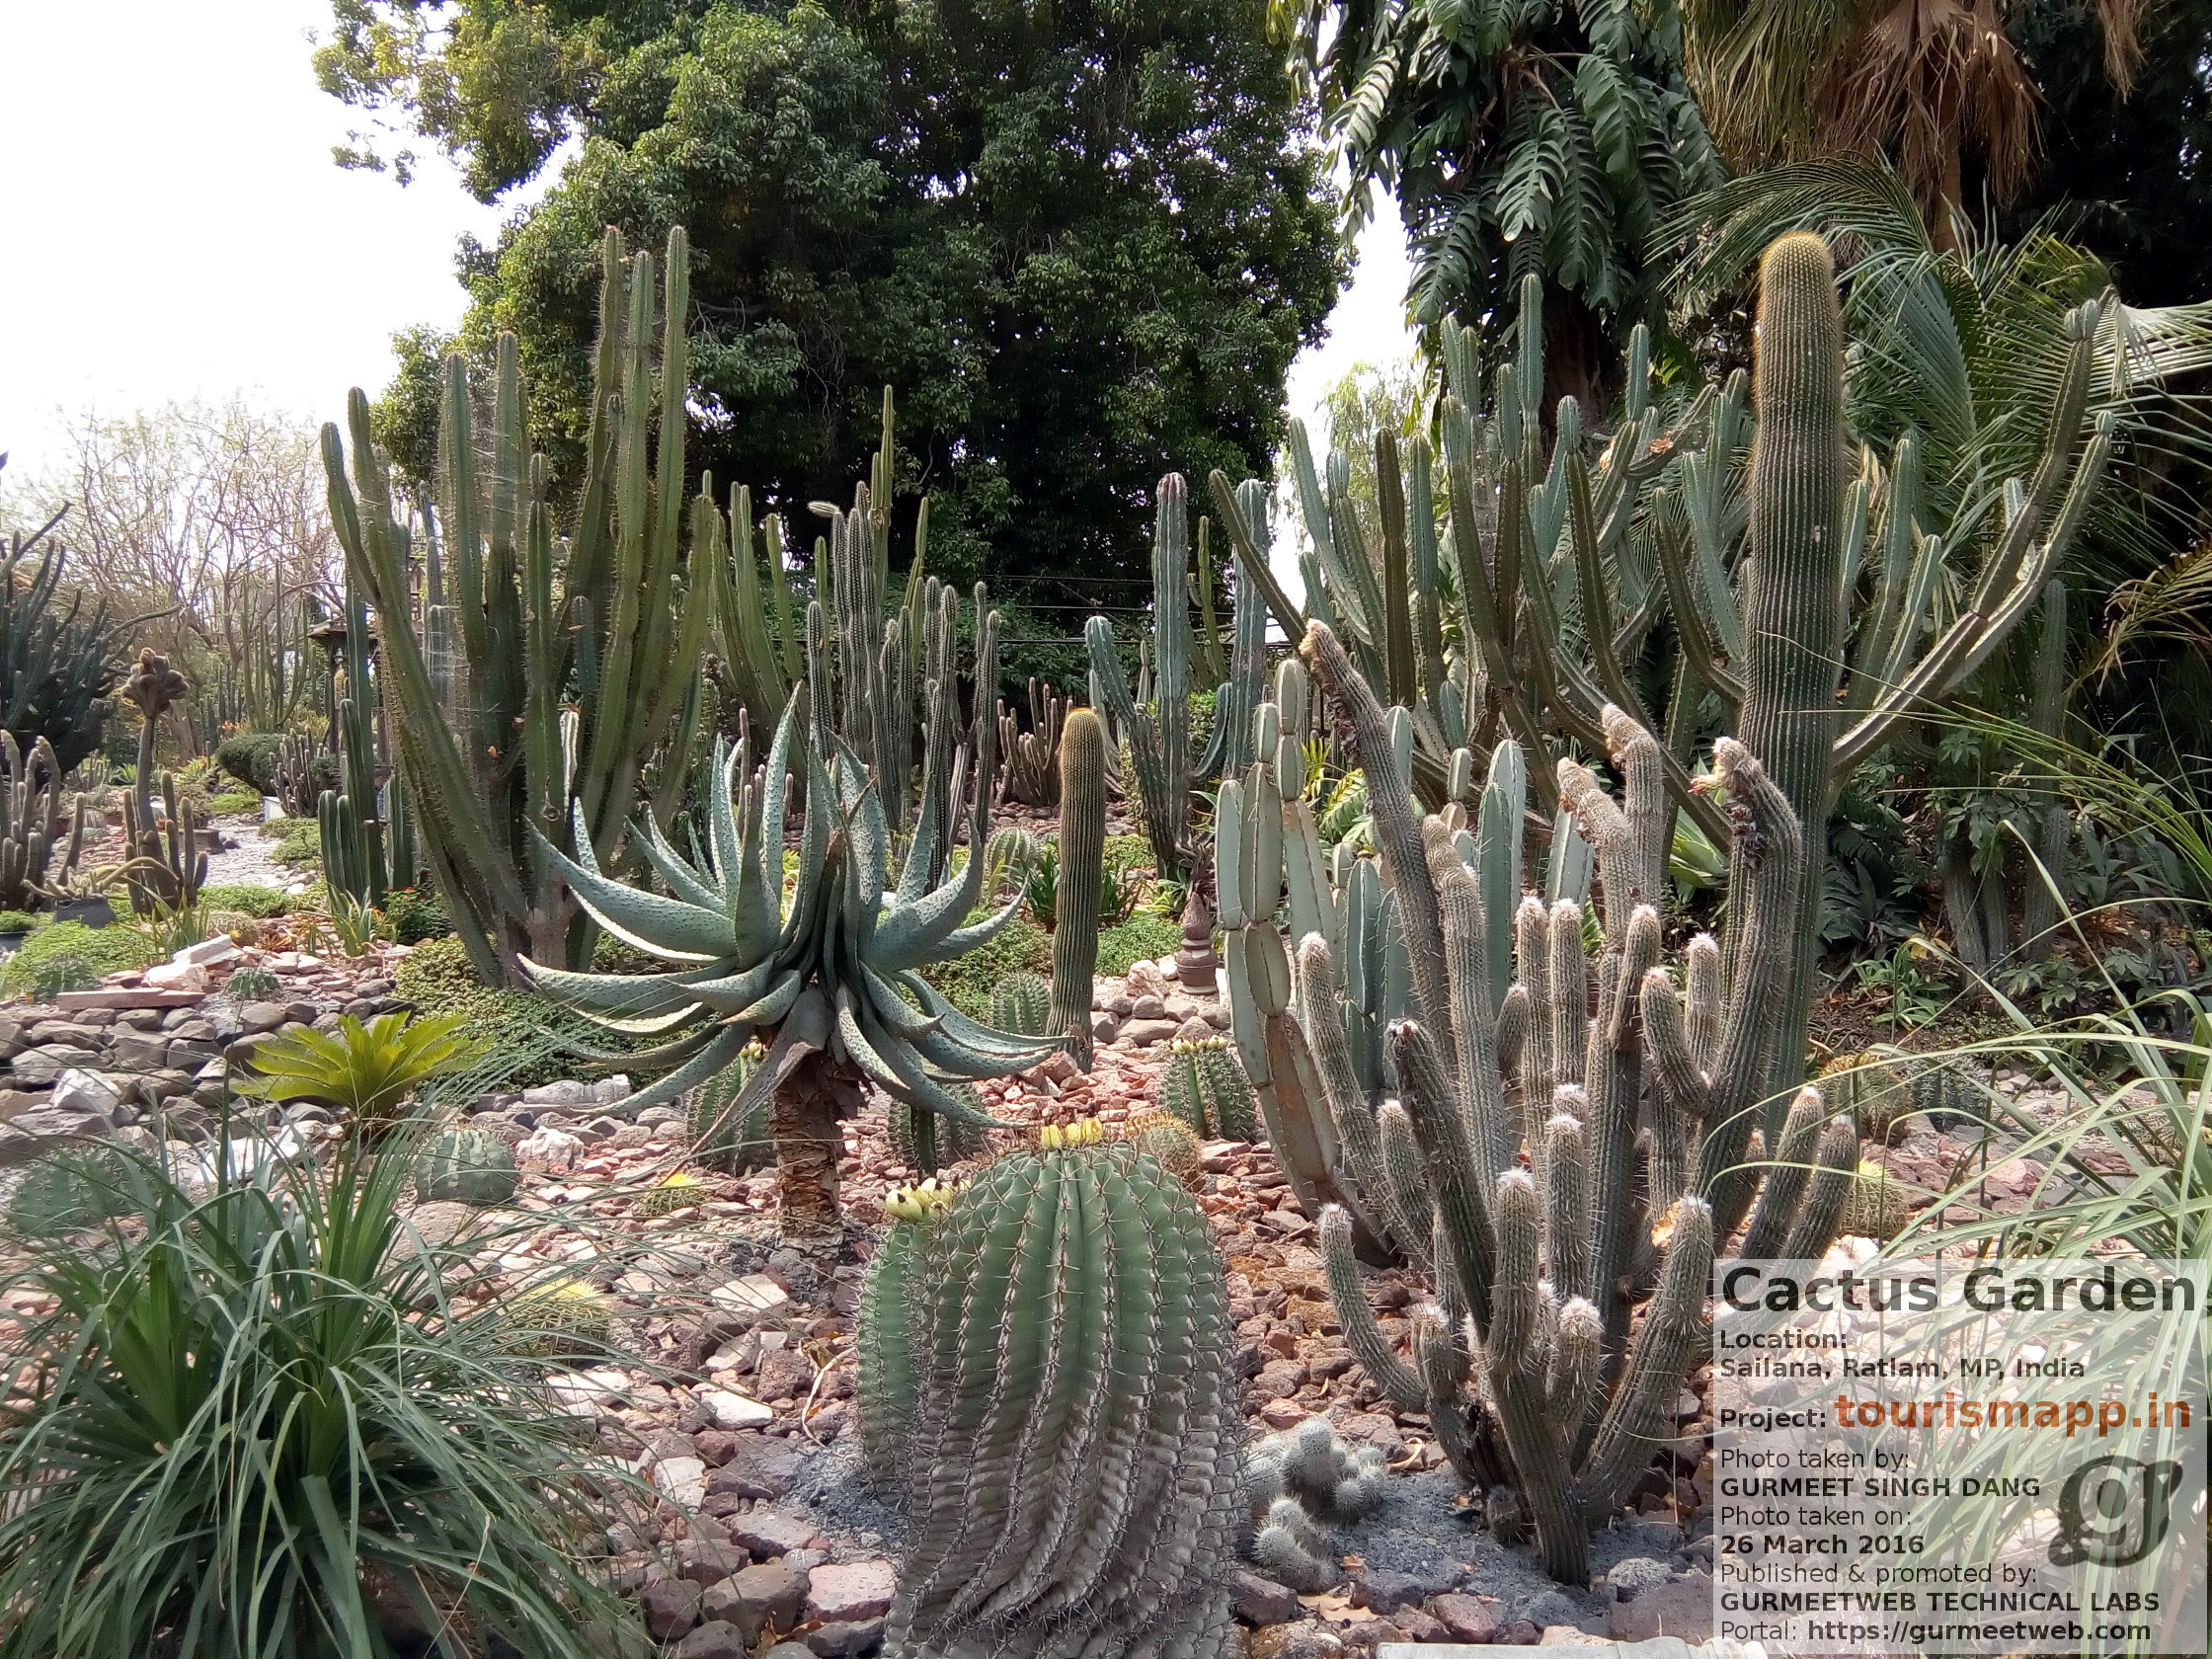 Cactus Garden, Sailana, Ratlam, MP, India